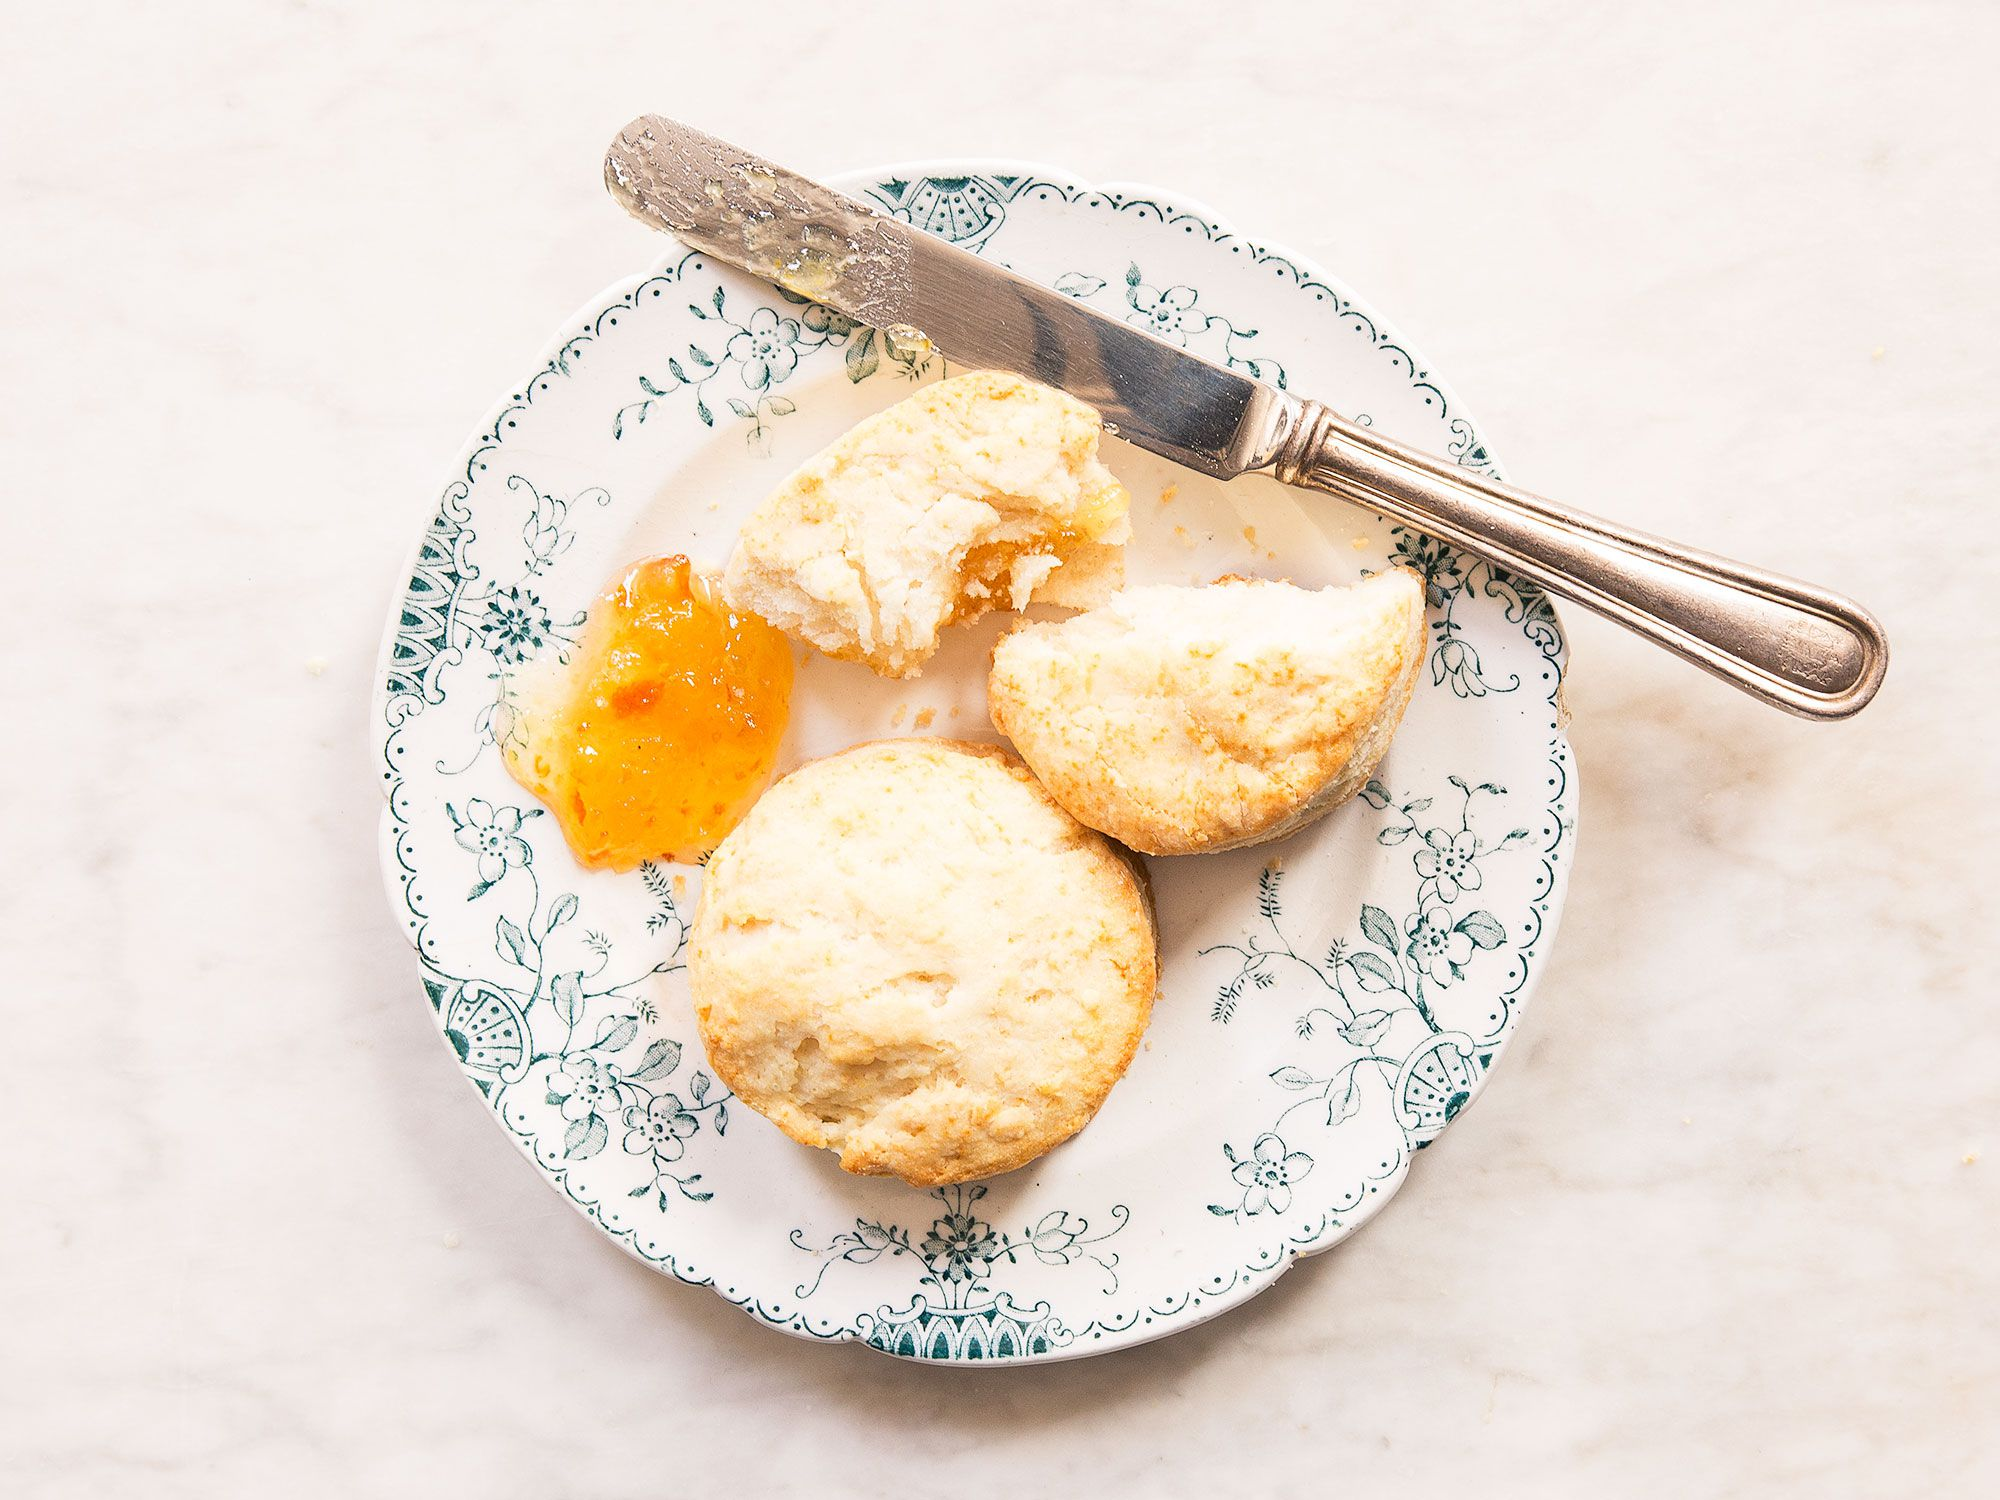 """Powdery fine """"00"""" flour makes for a supremely fluffy biscuit in this simple, four-ingredient recipe. Get the recipe for <a href=""""https://www.saveur.com/ruth-reichls-cream-biscuits-recipe/"""">Ruth Reichl's Easy, 4-Ingredient Cream Biscuits</a>"""